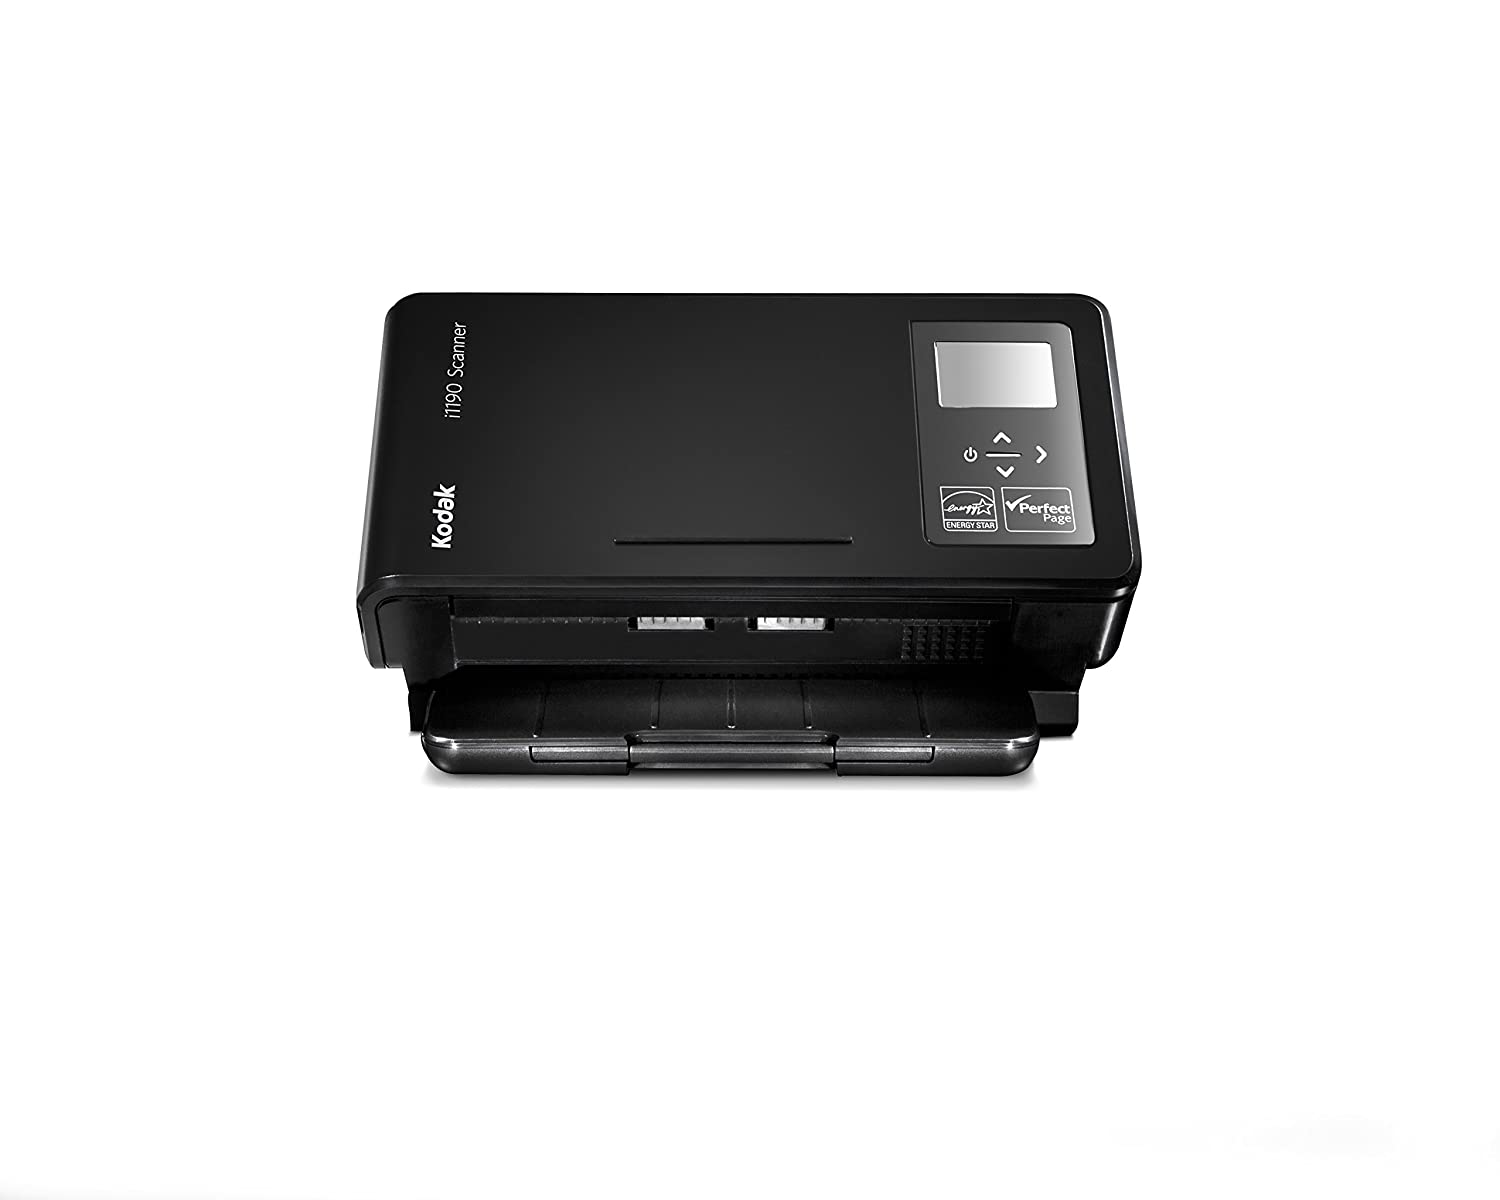 Buy Kodak Scanmate I1190 Online At Low Prices In India Comutronics Electronics Qa Reviews Ratings